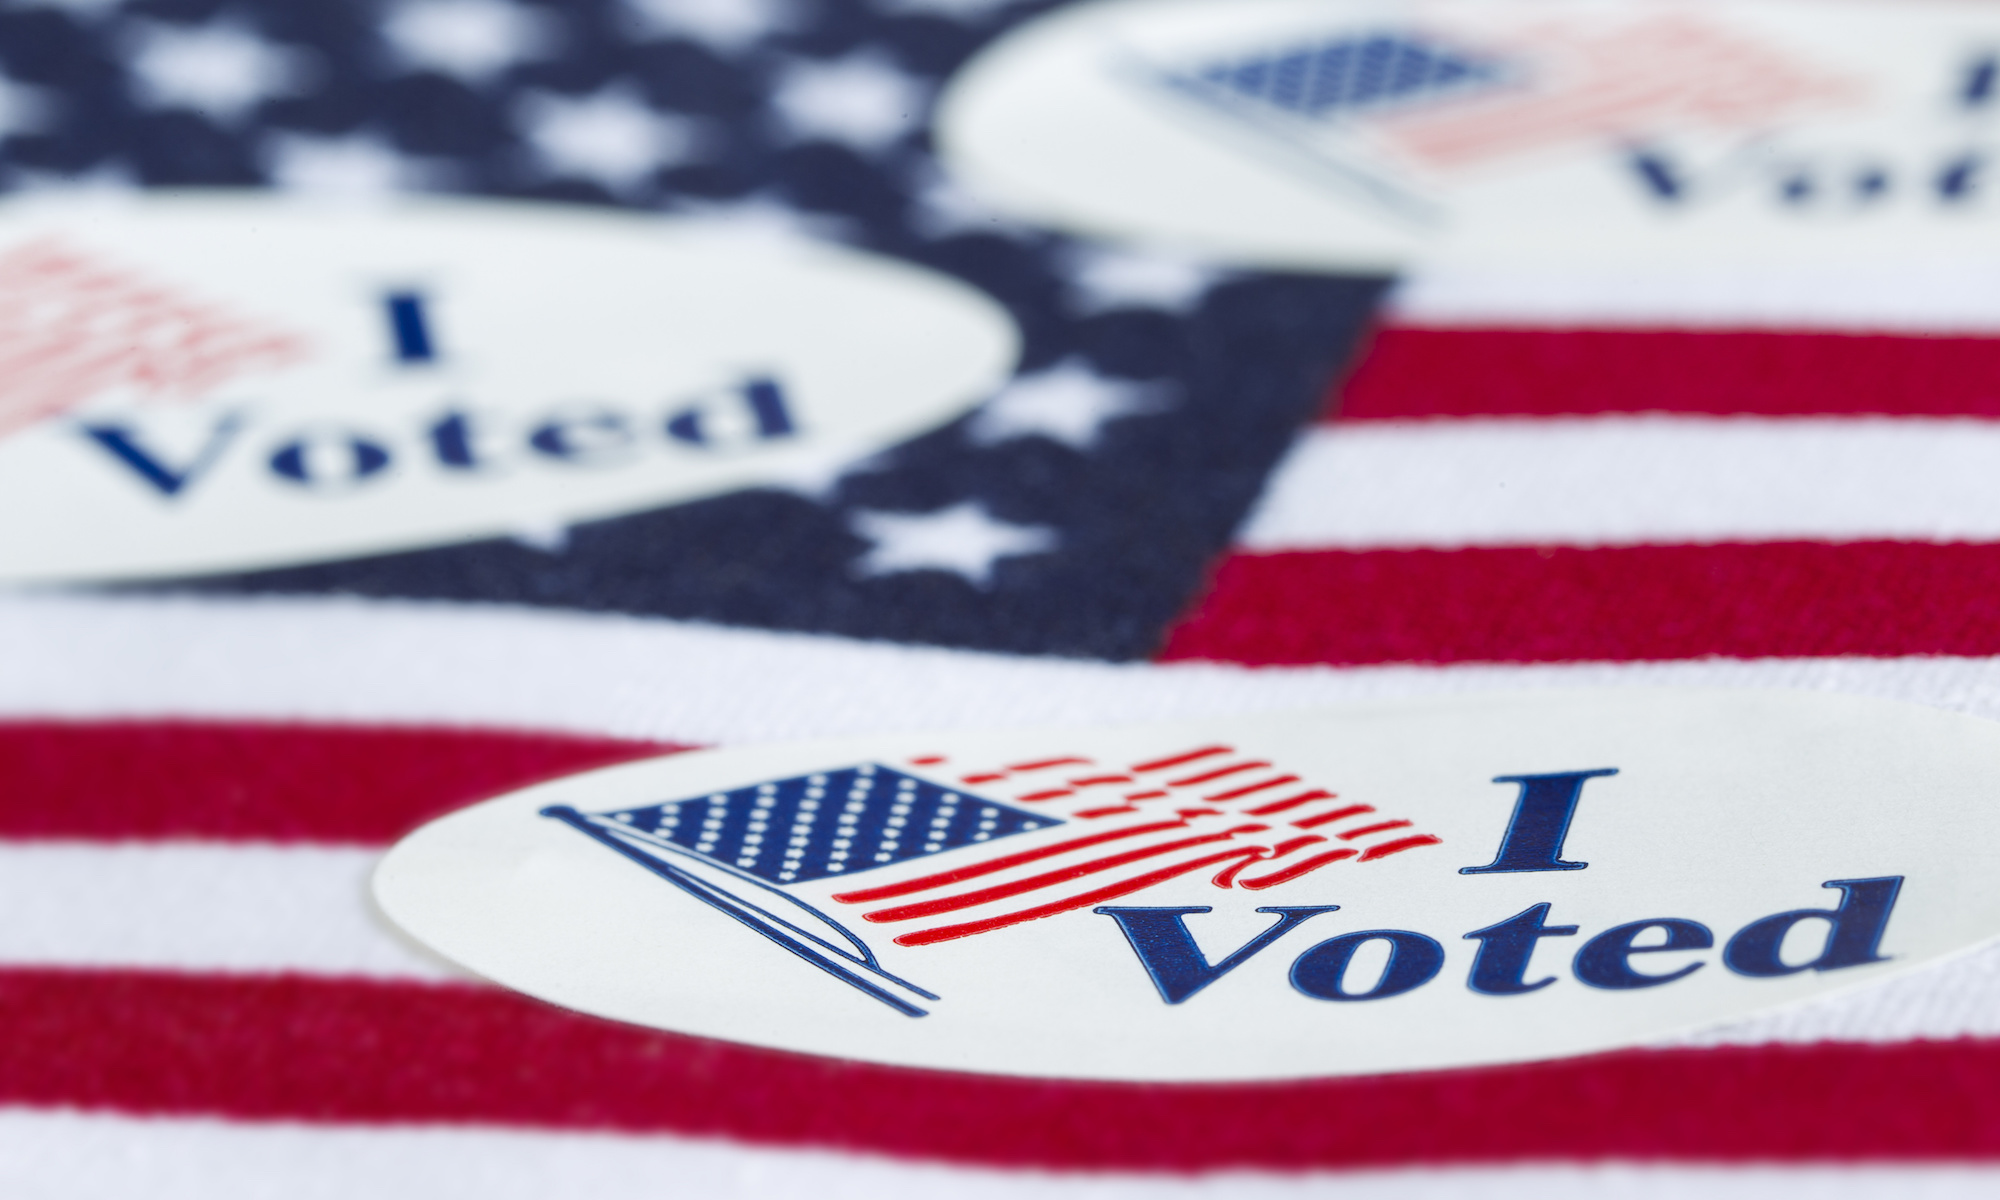 'I Voted' stickers on the US flag background